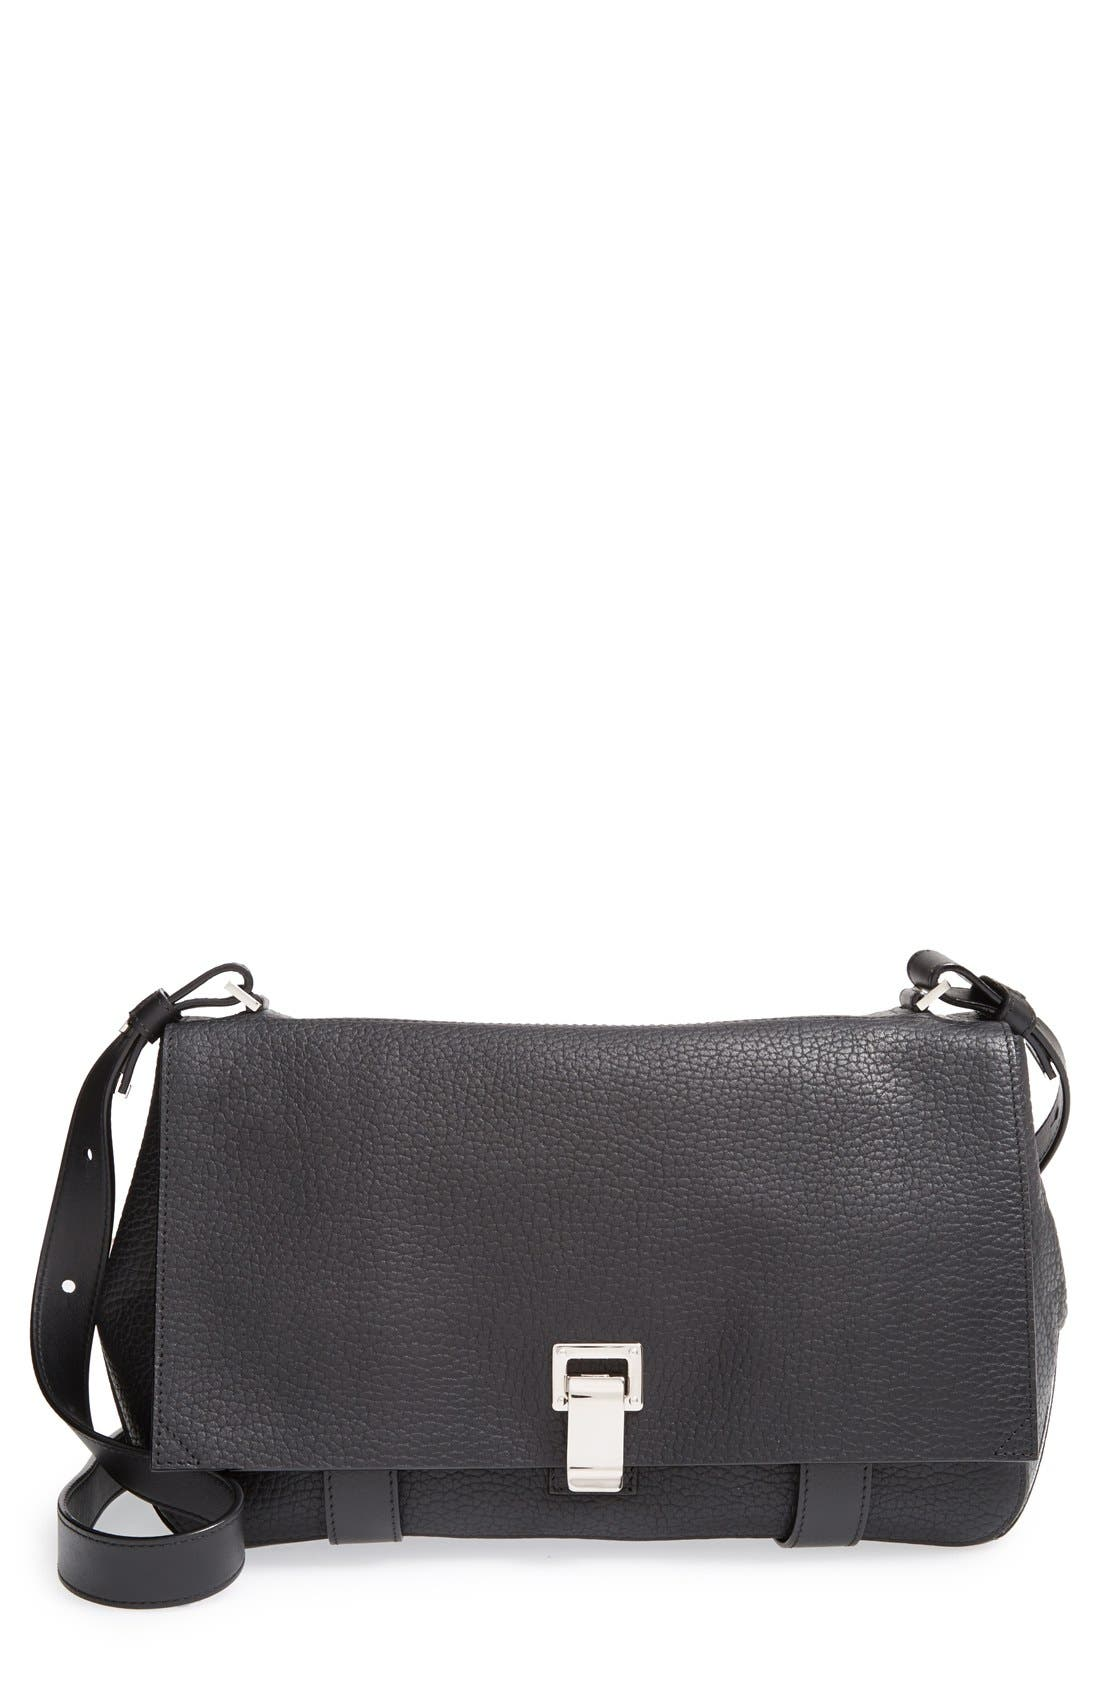 Main Image - Proenza Schouler 'Courier' Pebbled Leather Crossbody Bag